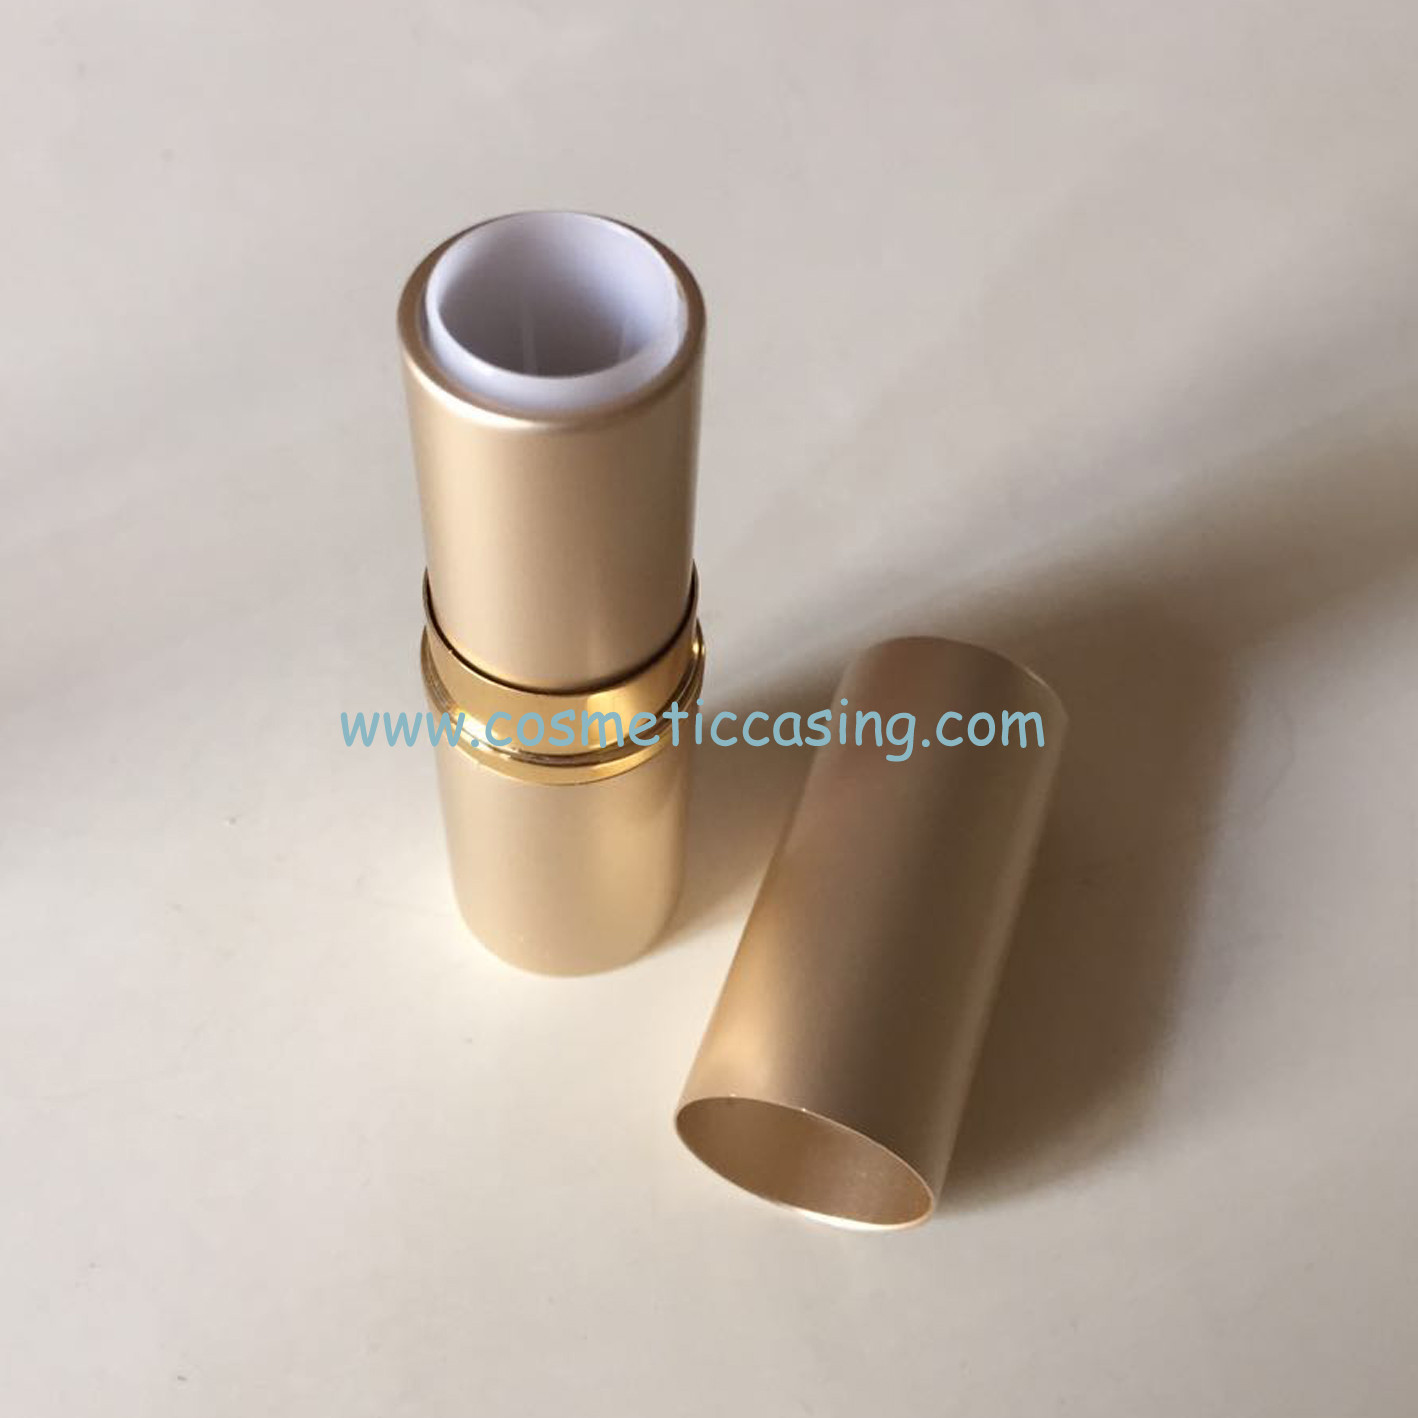 golden lipstick tube, lipstick container, lipstick case